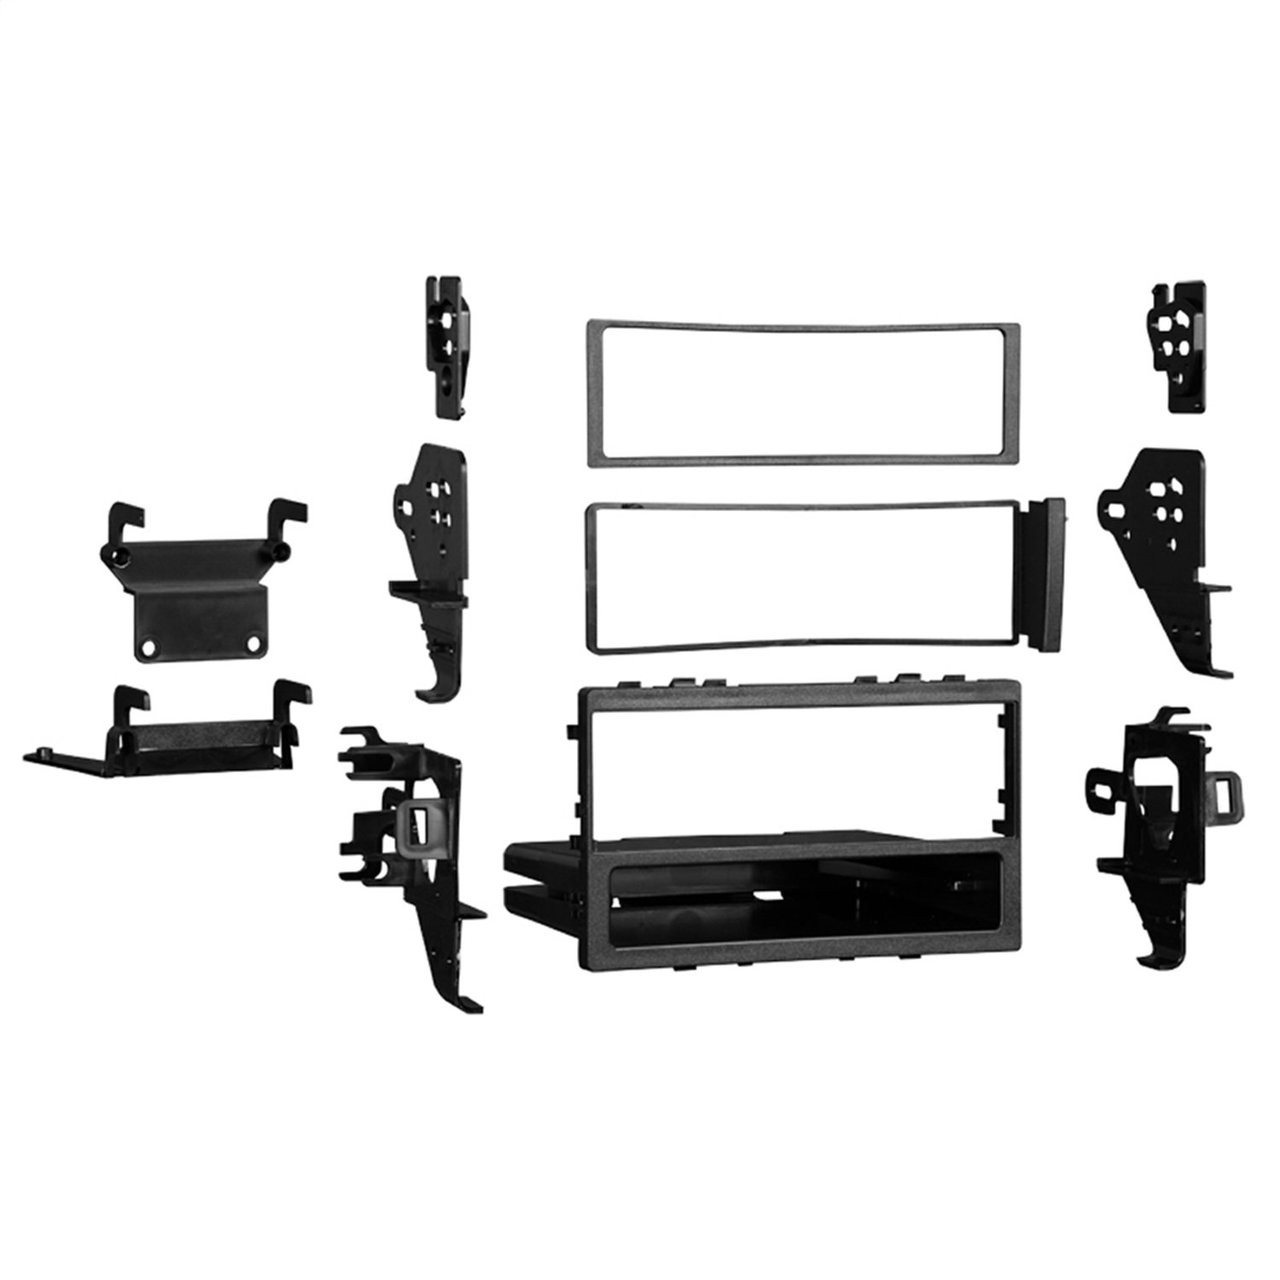 Metra 99-3011S Silver Single//Double DIN Dash Kit for 2011-up Chevrolet Cruze